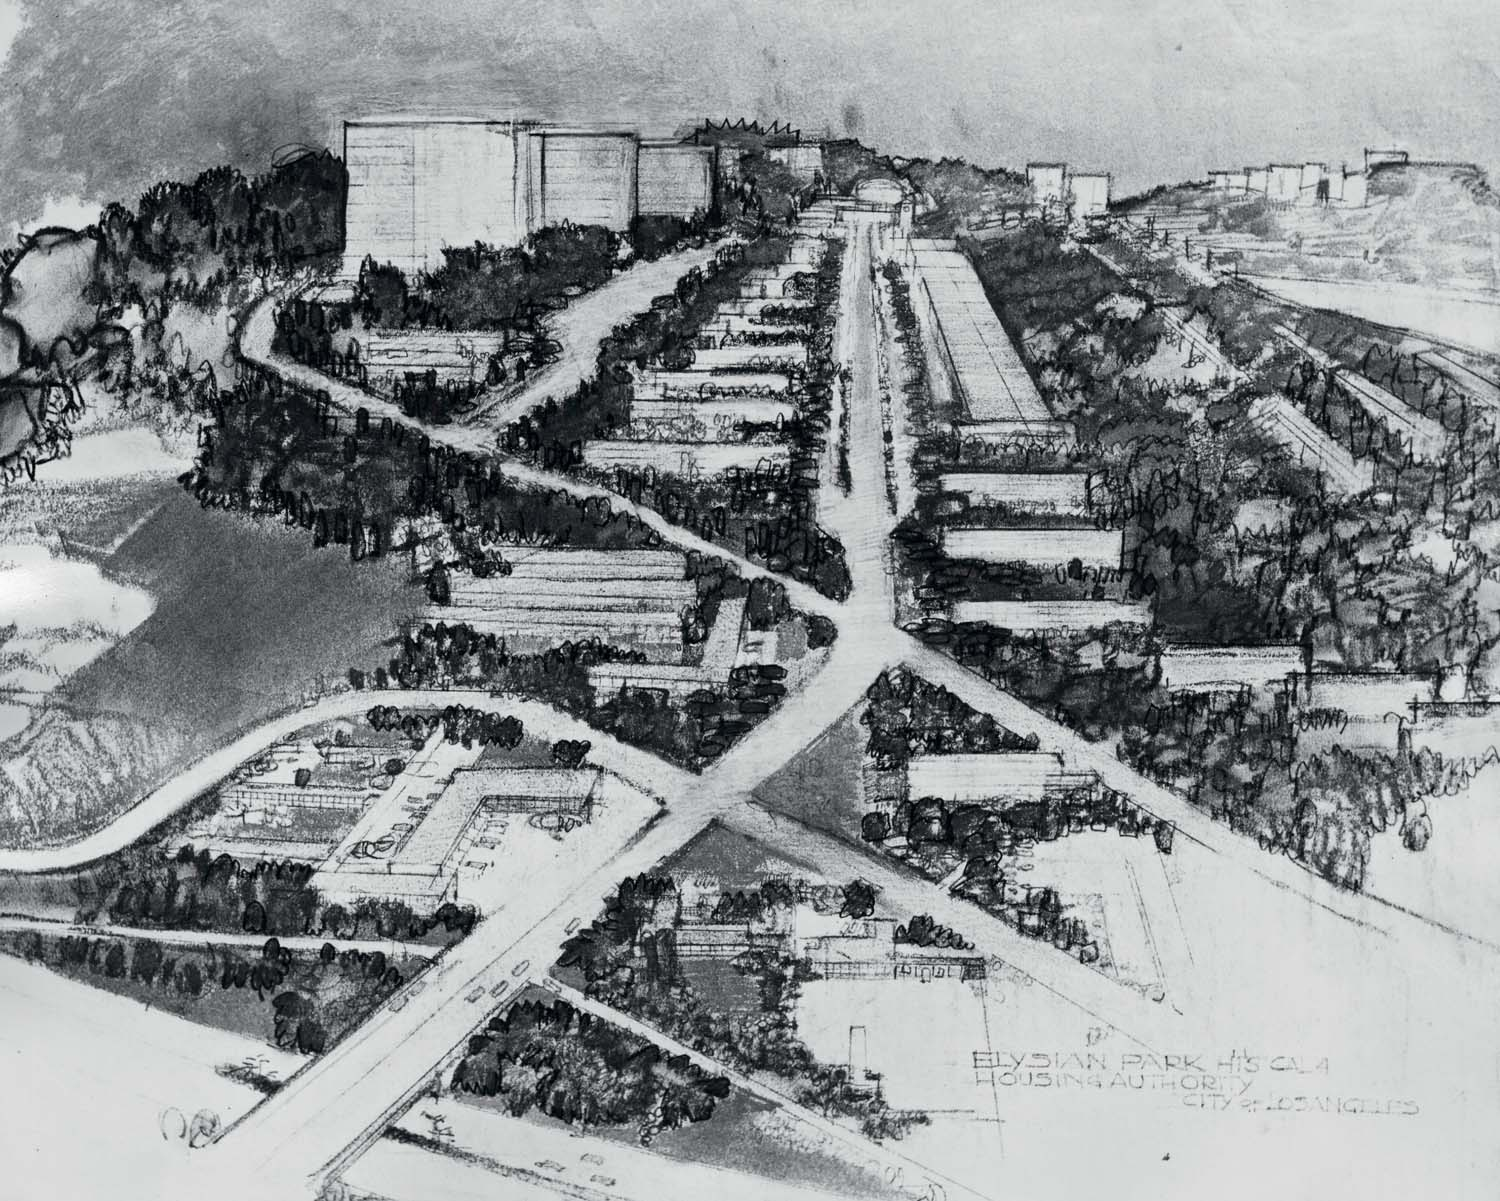 Elysian Park Heights housing project Richard Neutra and Robert E. Alexander. Courtesy of Southern California Library - LA Housing Authority Photo Collection